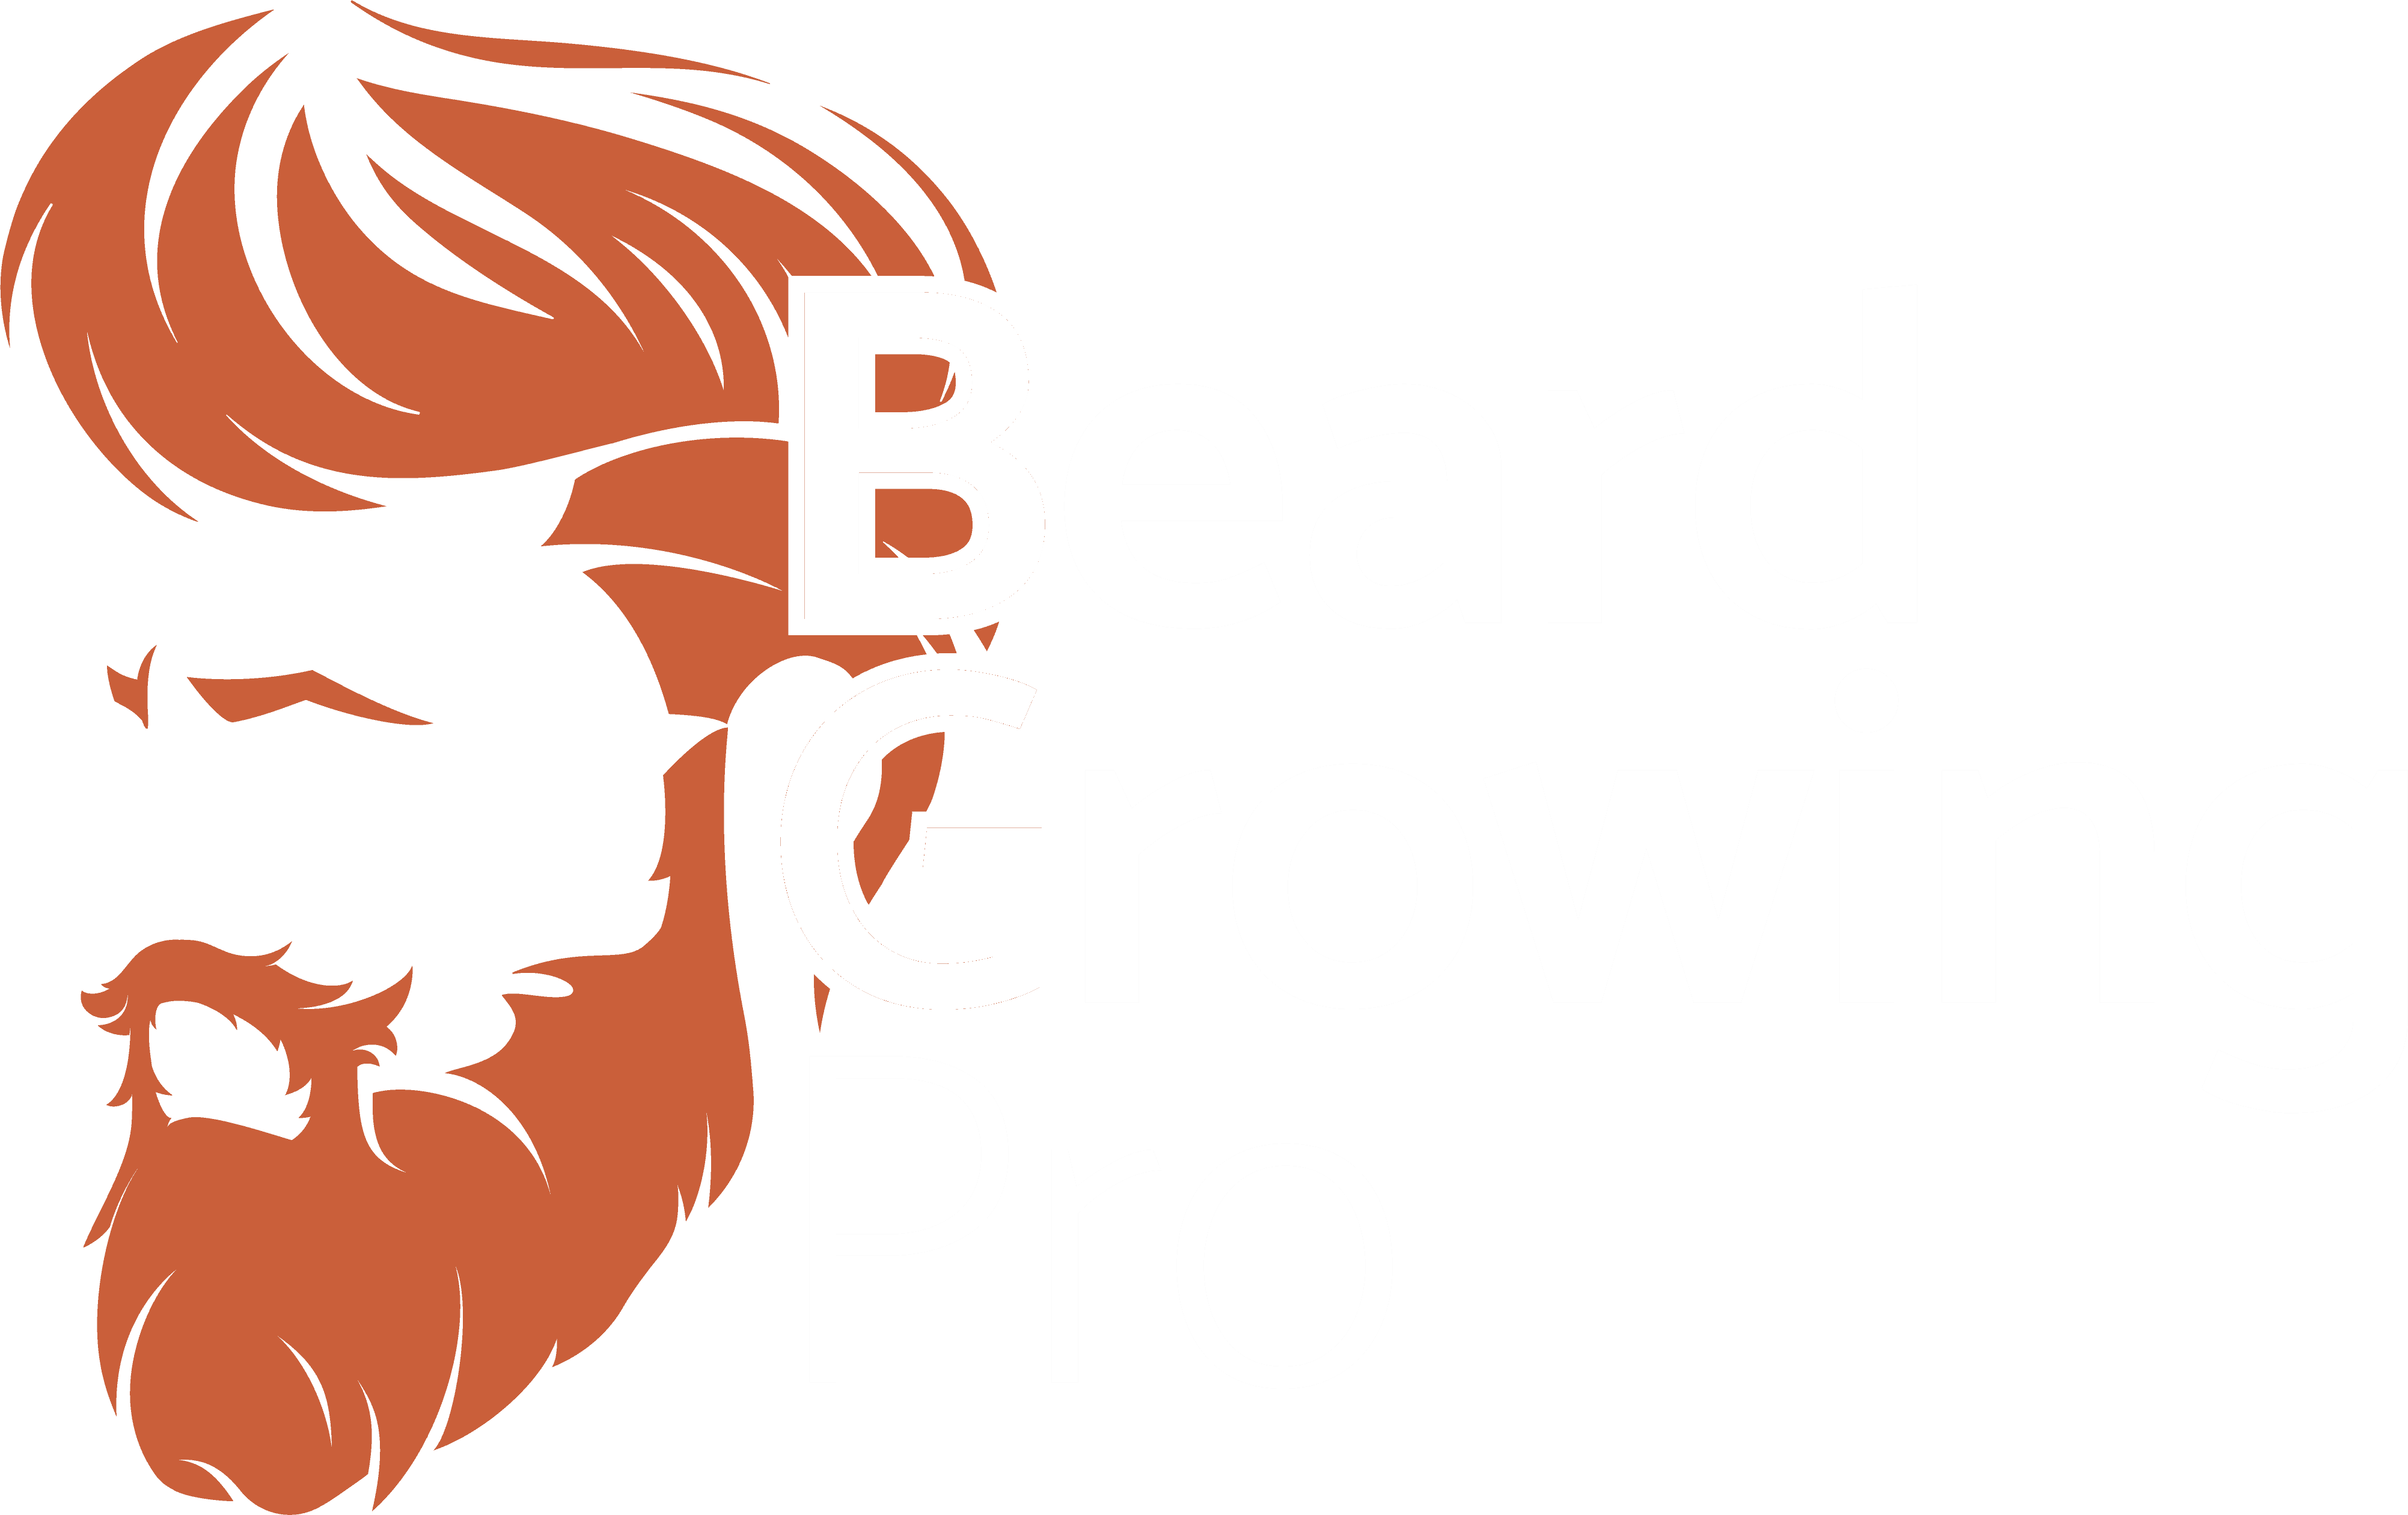 Beard Growing Pro